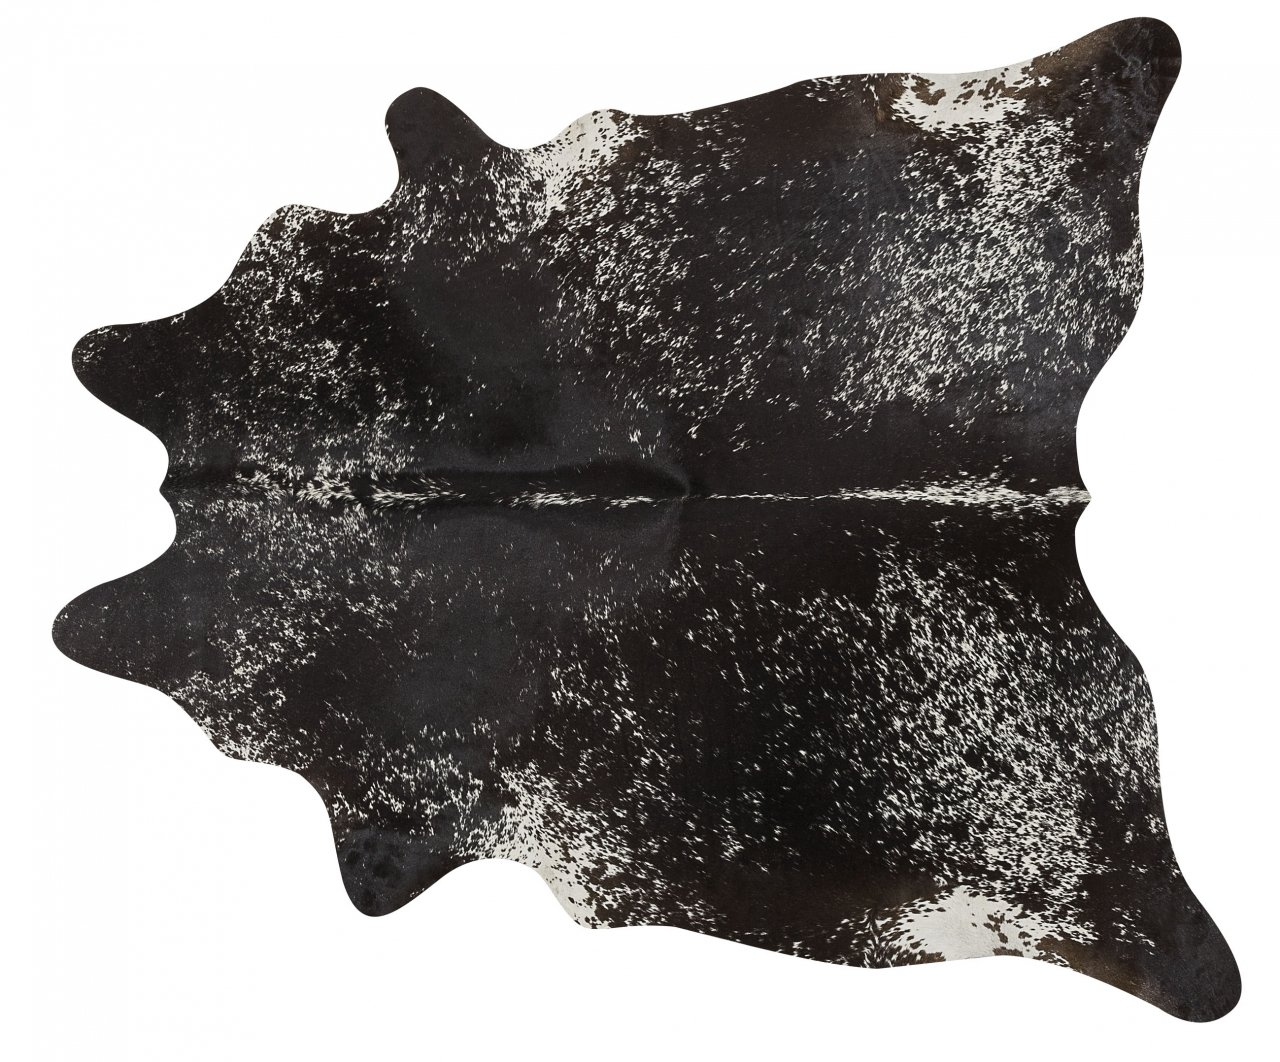 Black Salt and Pepper Brazilian Cowhide Rug Cow Hide Area Rugs - Size XL